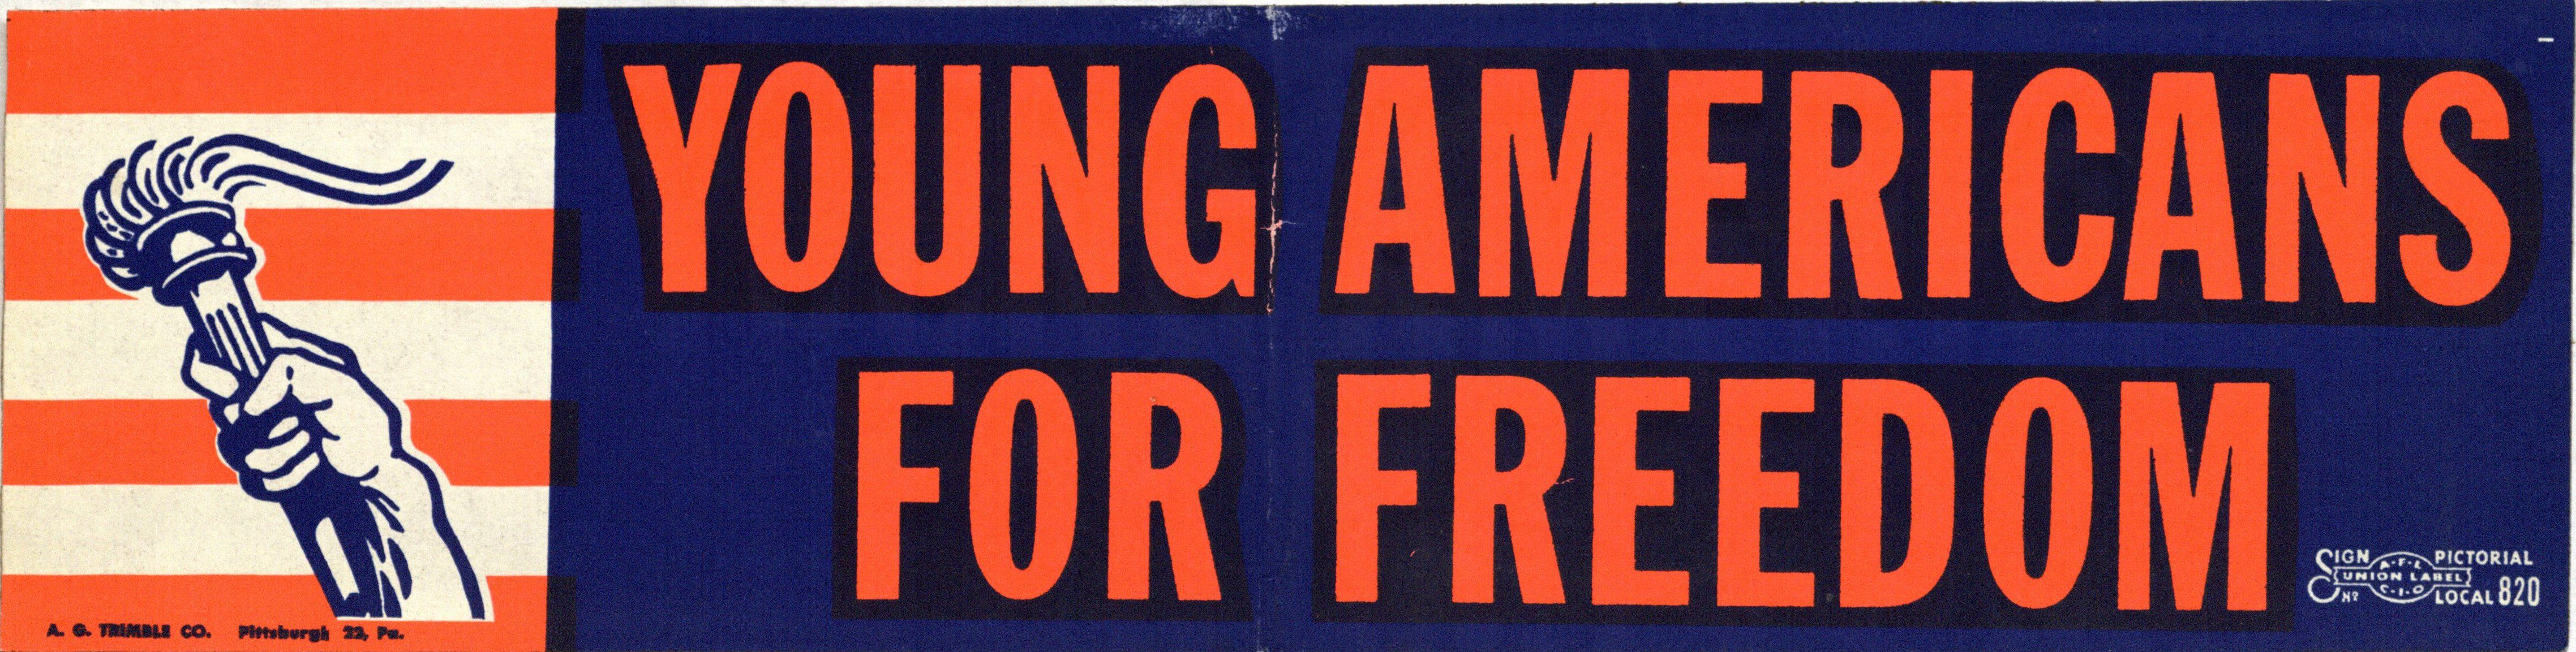 Bumper STicker: Young Americans for Freedom.